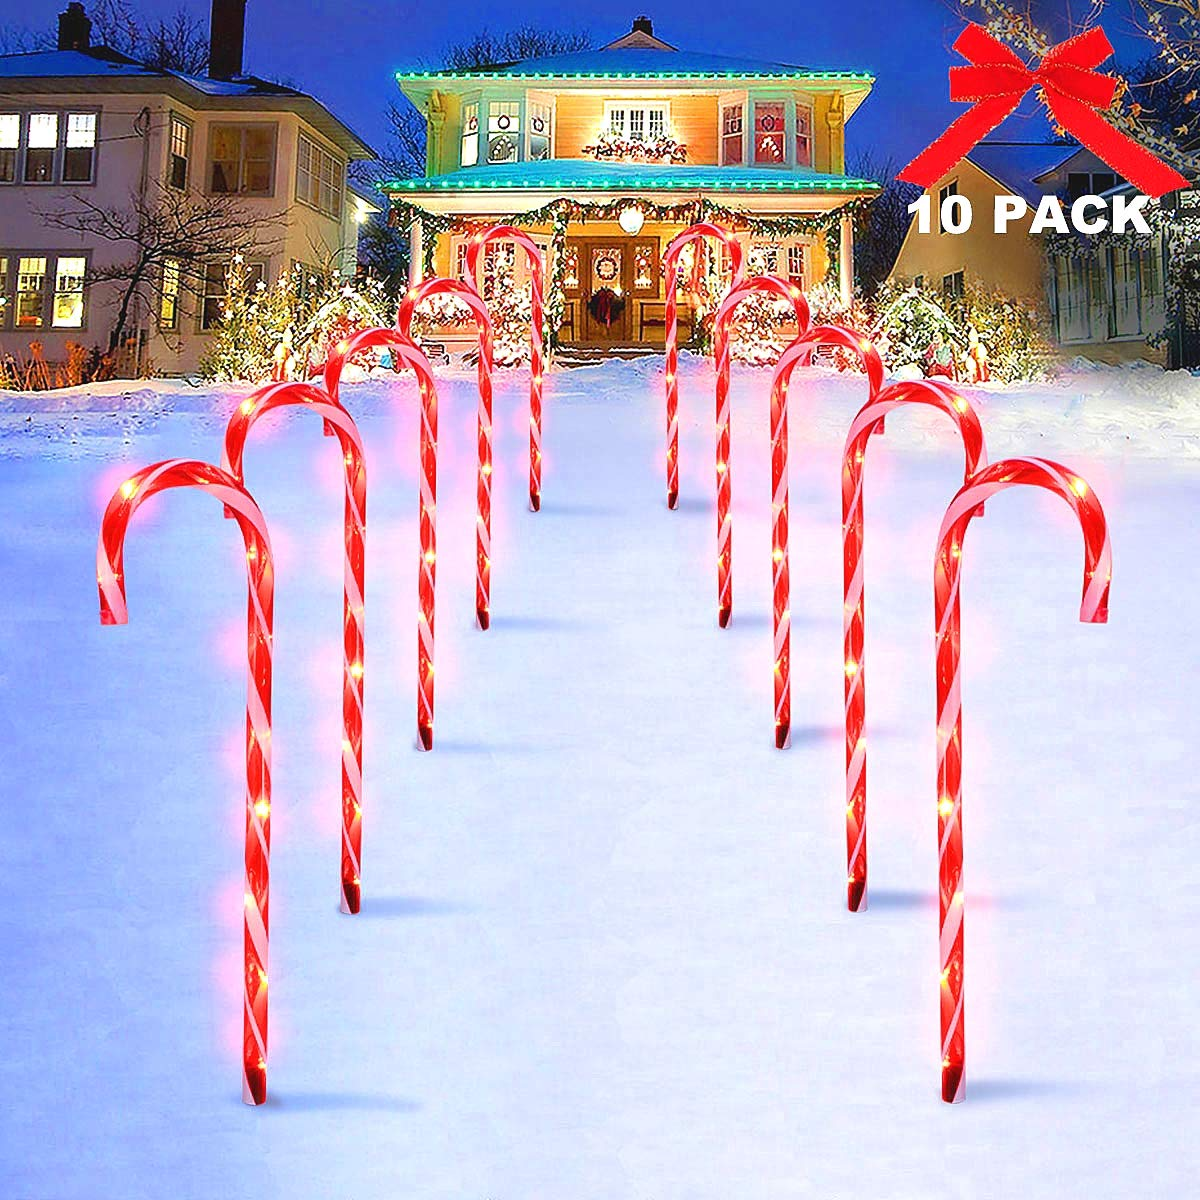 MAOYUE Candy Cane Lights, 10 Pack Outdoor Lighted Candy Canes 27in Christmas Pathway Lights with 8 Lighting Modes, Waterproof Candy Cane Decorations, Light Up Outdoor Christmas Decorations by MAOYUE